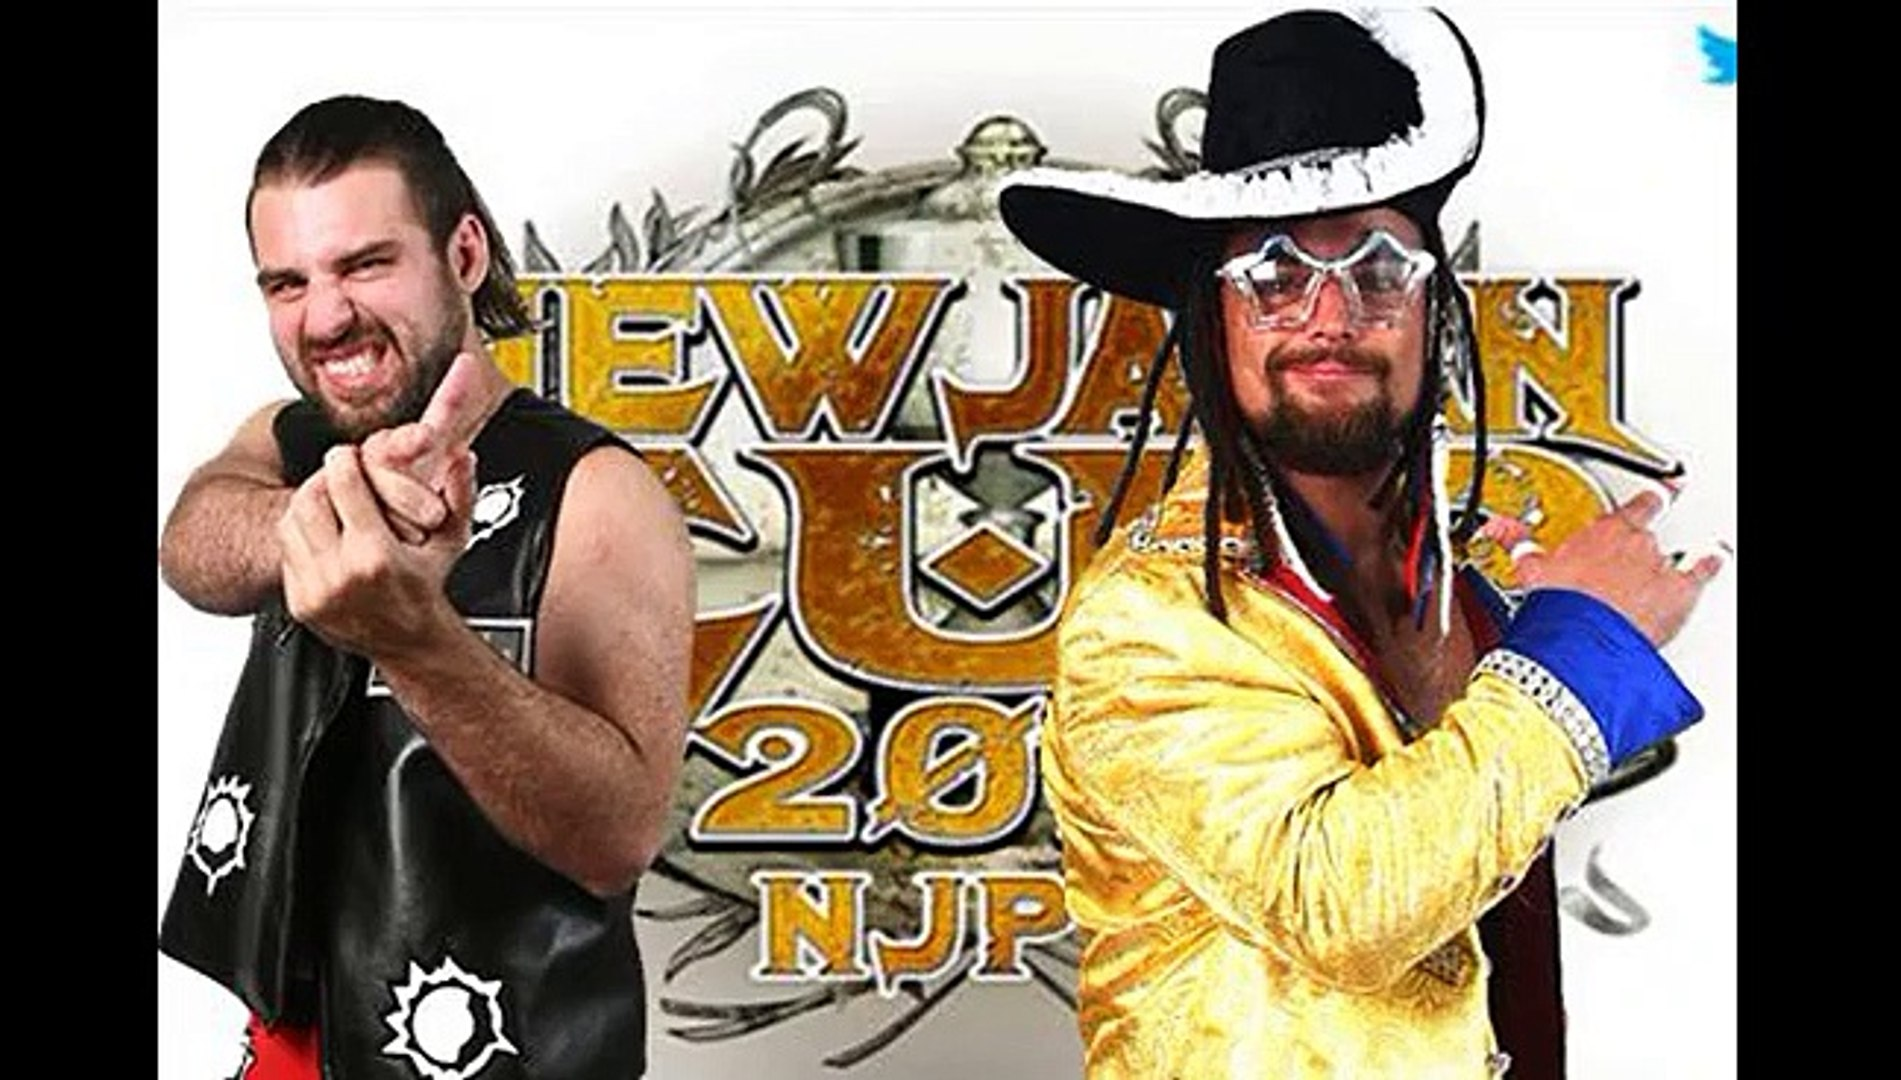 Chase Owens vs. Juice Robinson New Japan Cup 2019 First Round Match